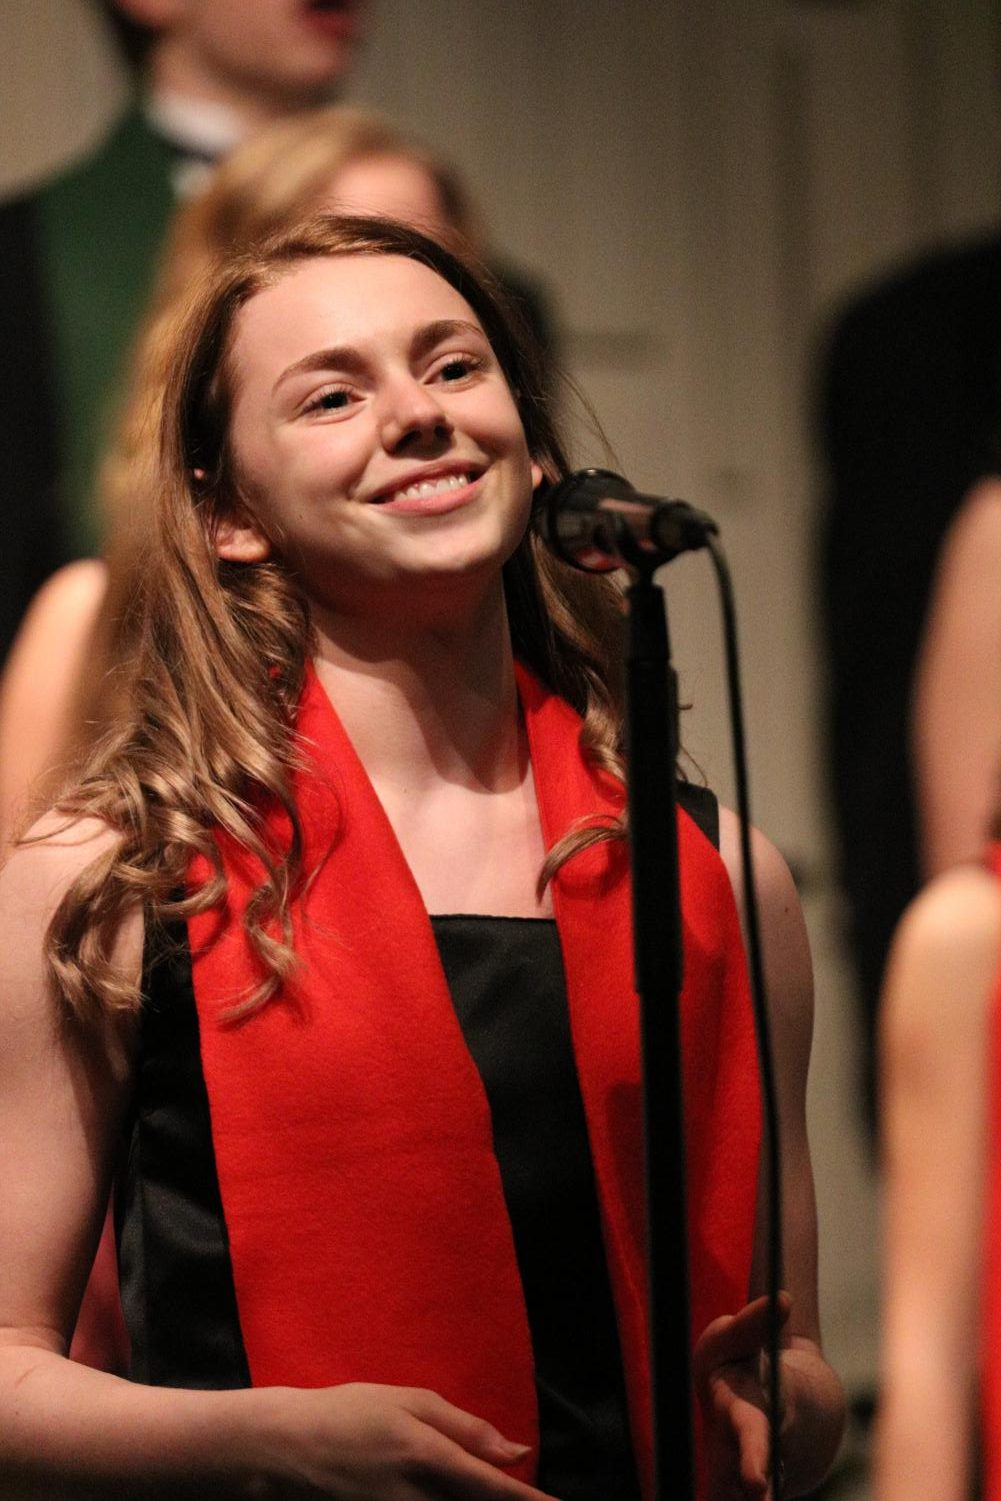 Senior Rose Muennix performs her final winter concert at Fenton High on Dec. 10. Muennix had solo that she performed for the audience at the beginning of the concert.